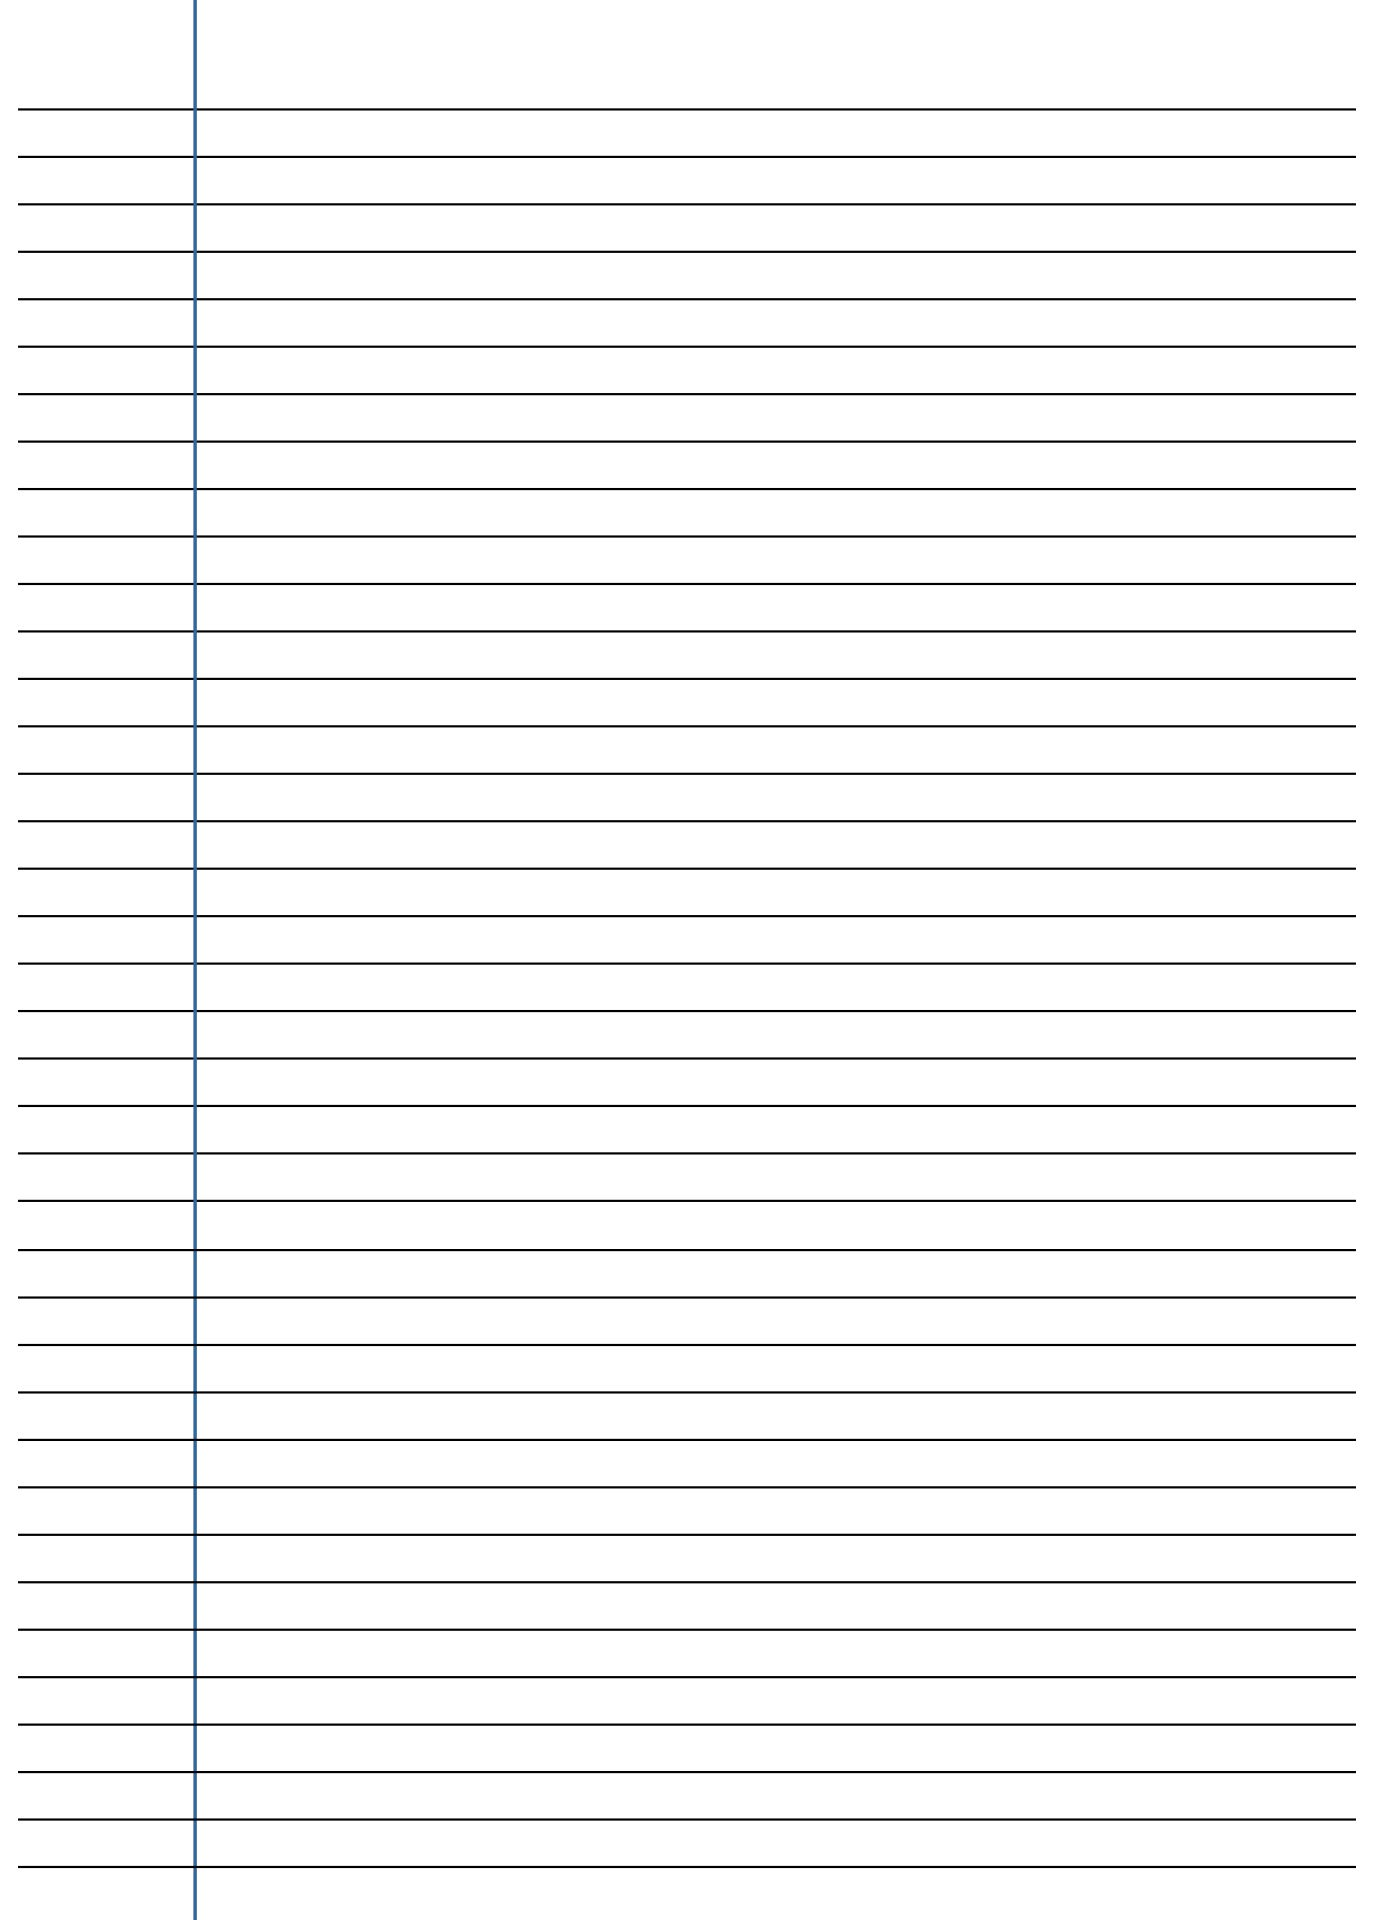 Cover Letter Template Freeprintable college ruled paper paper – Vertical Lined Paper